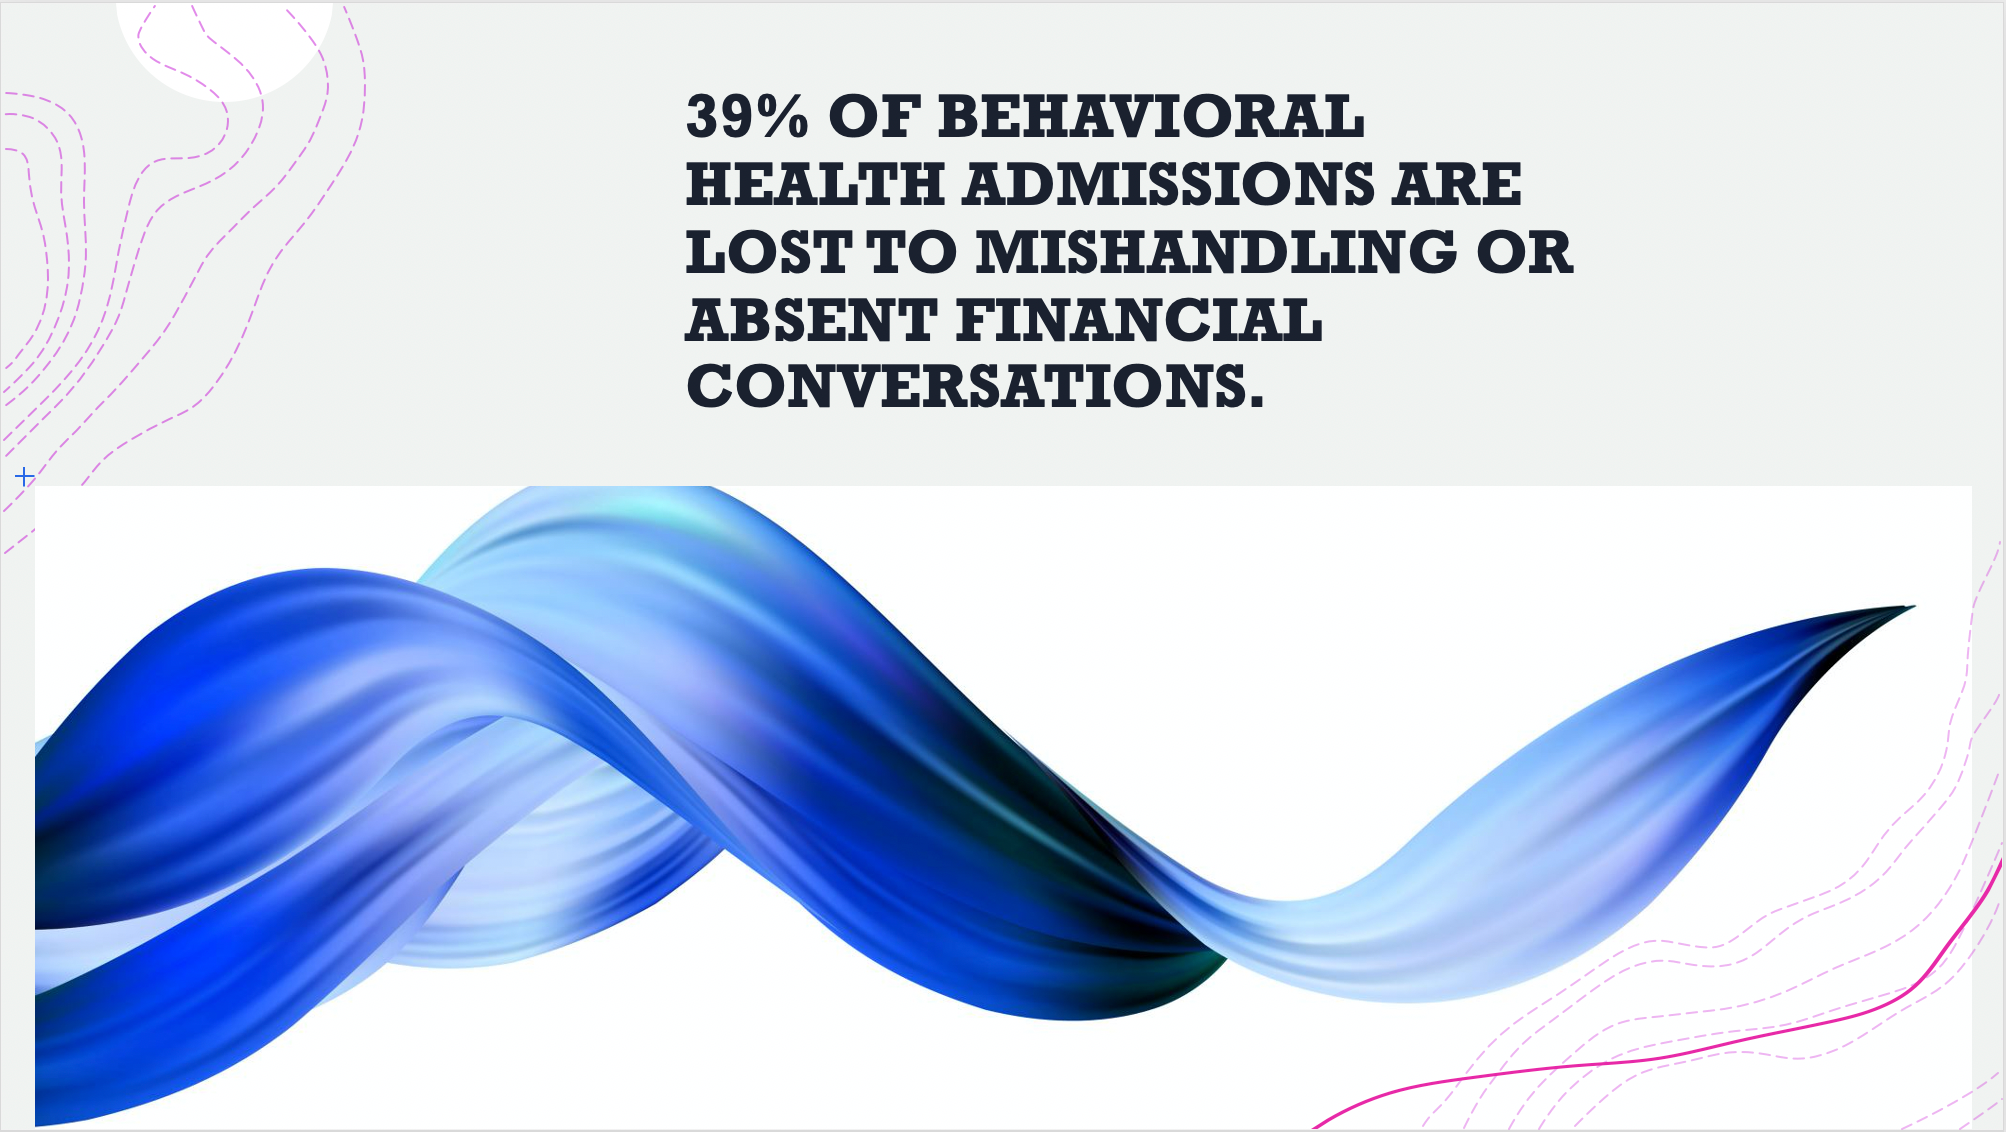 39% of behavioral health admissions are lost to mishandling or absent financial conversations.